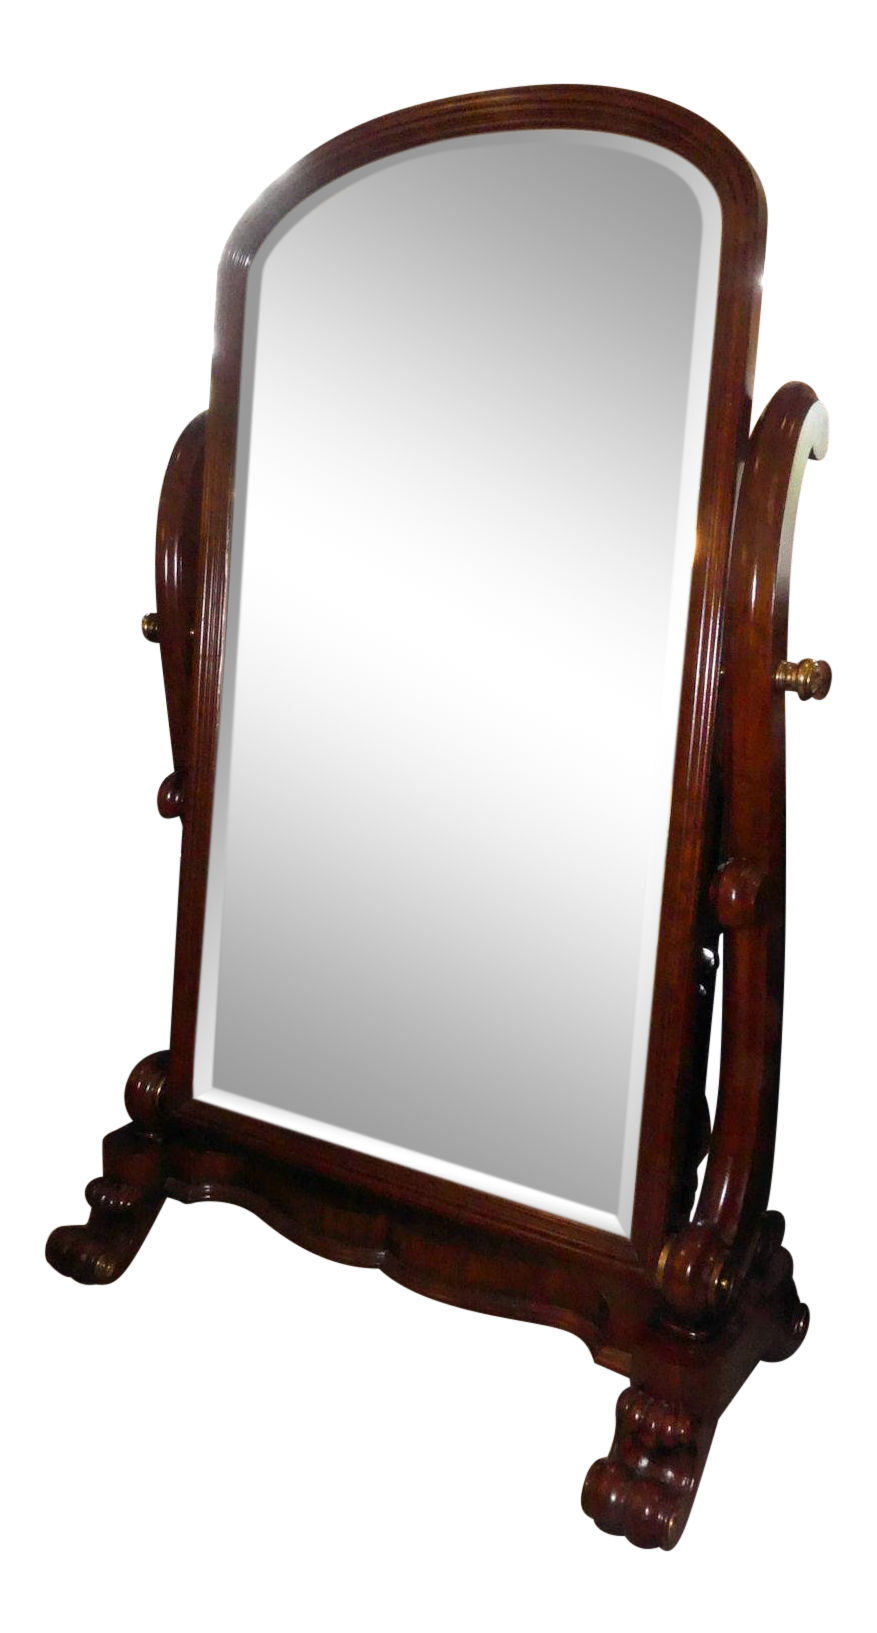 SOLD Maitland Smith Large Scale Cheval Floor Mirror